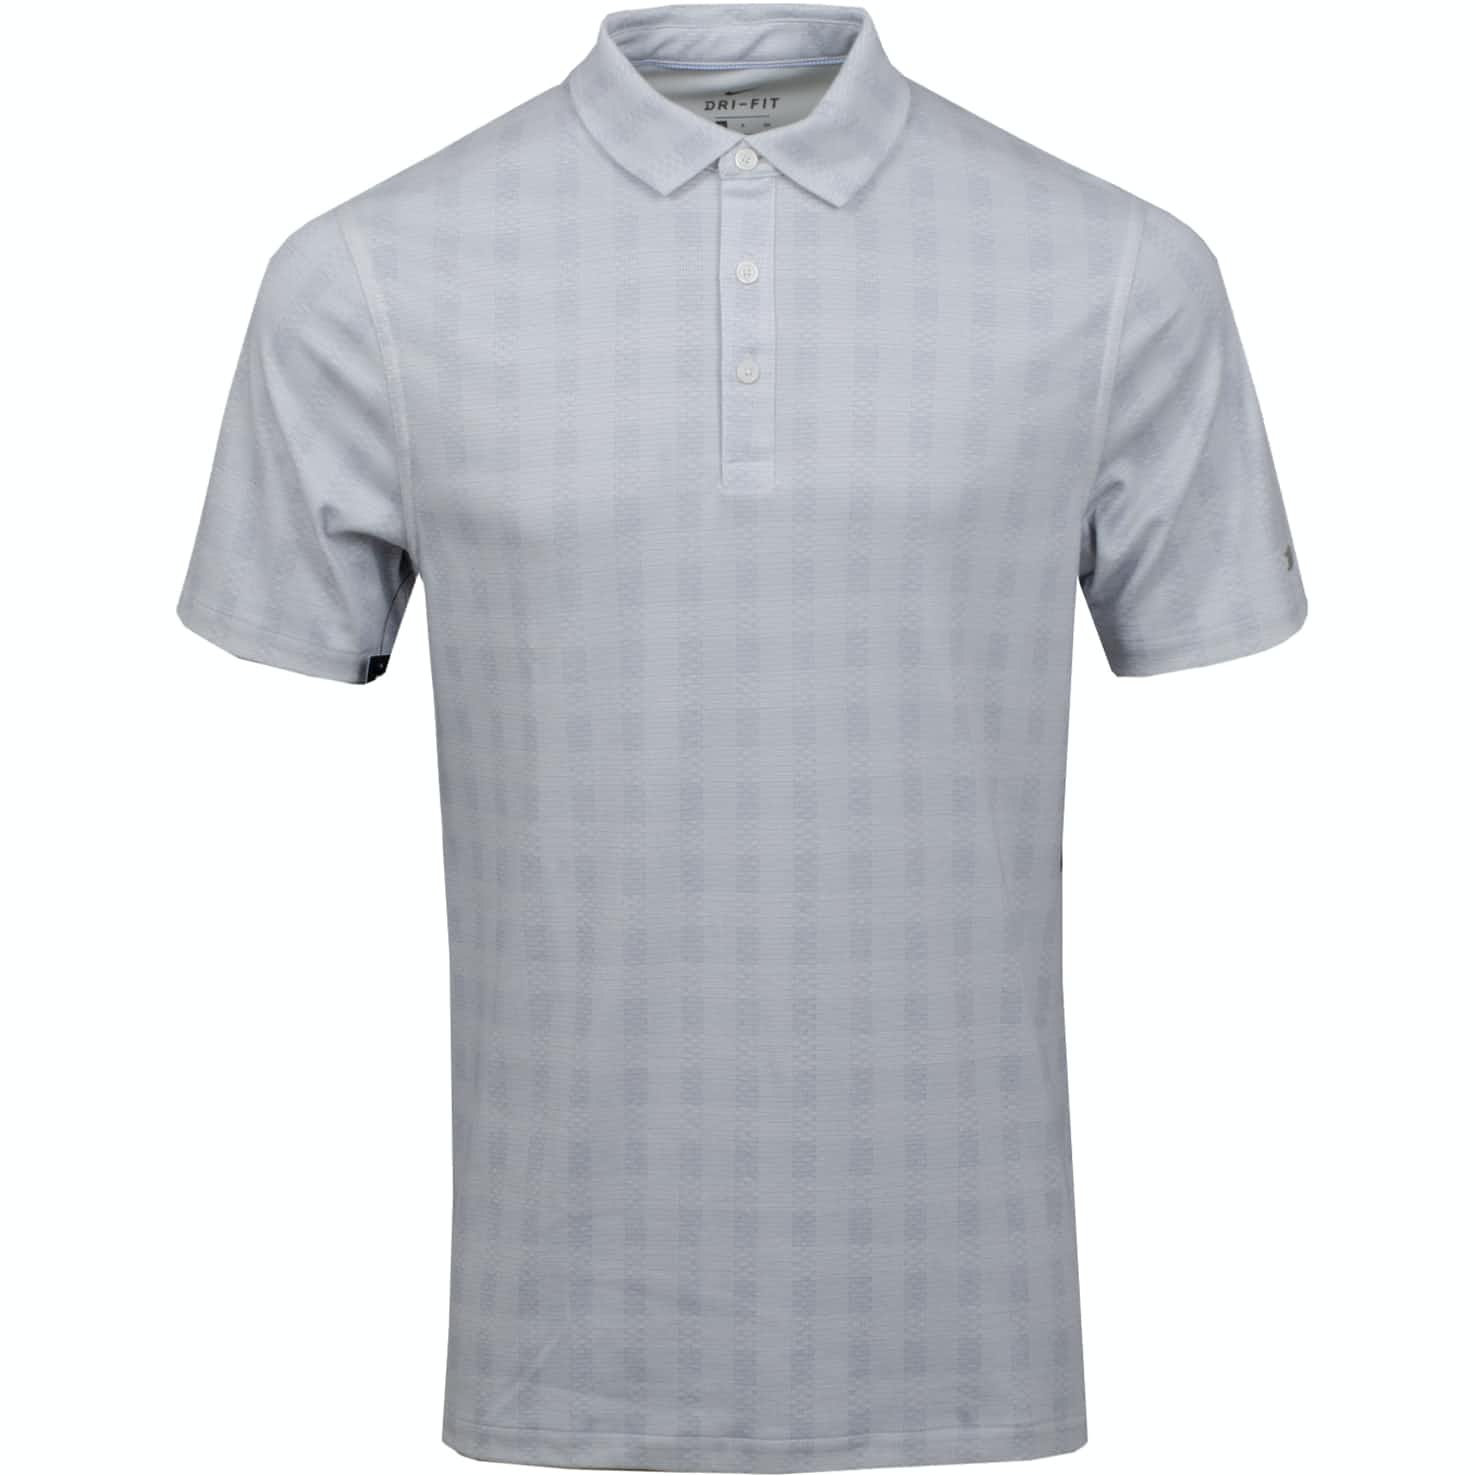 Dry Player Plaid Polo Wolf Grey/White - AW19